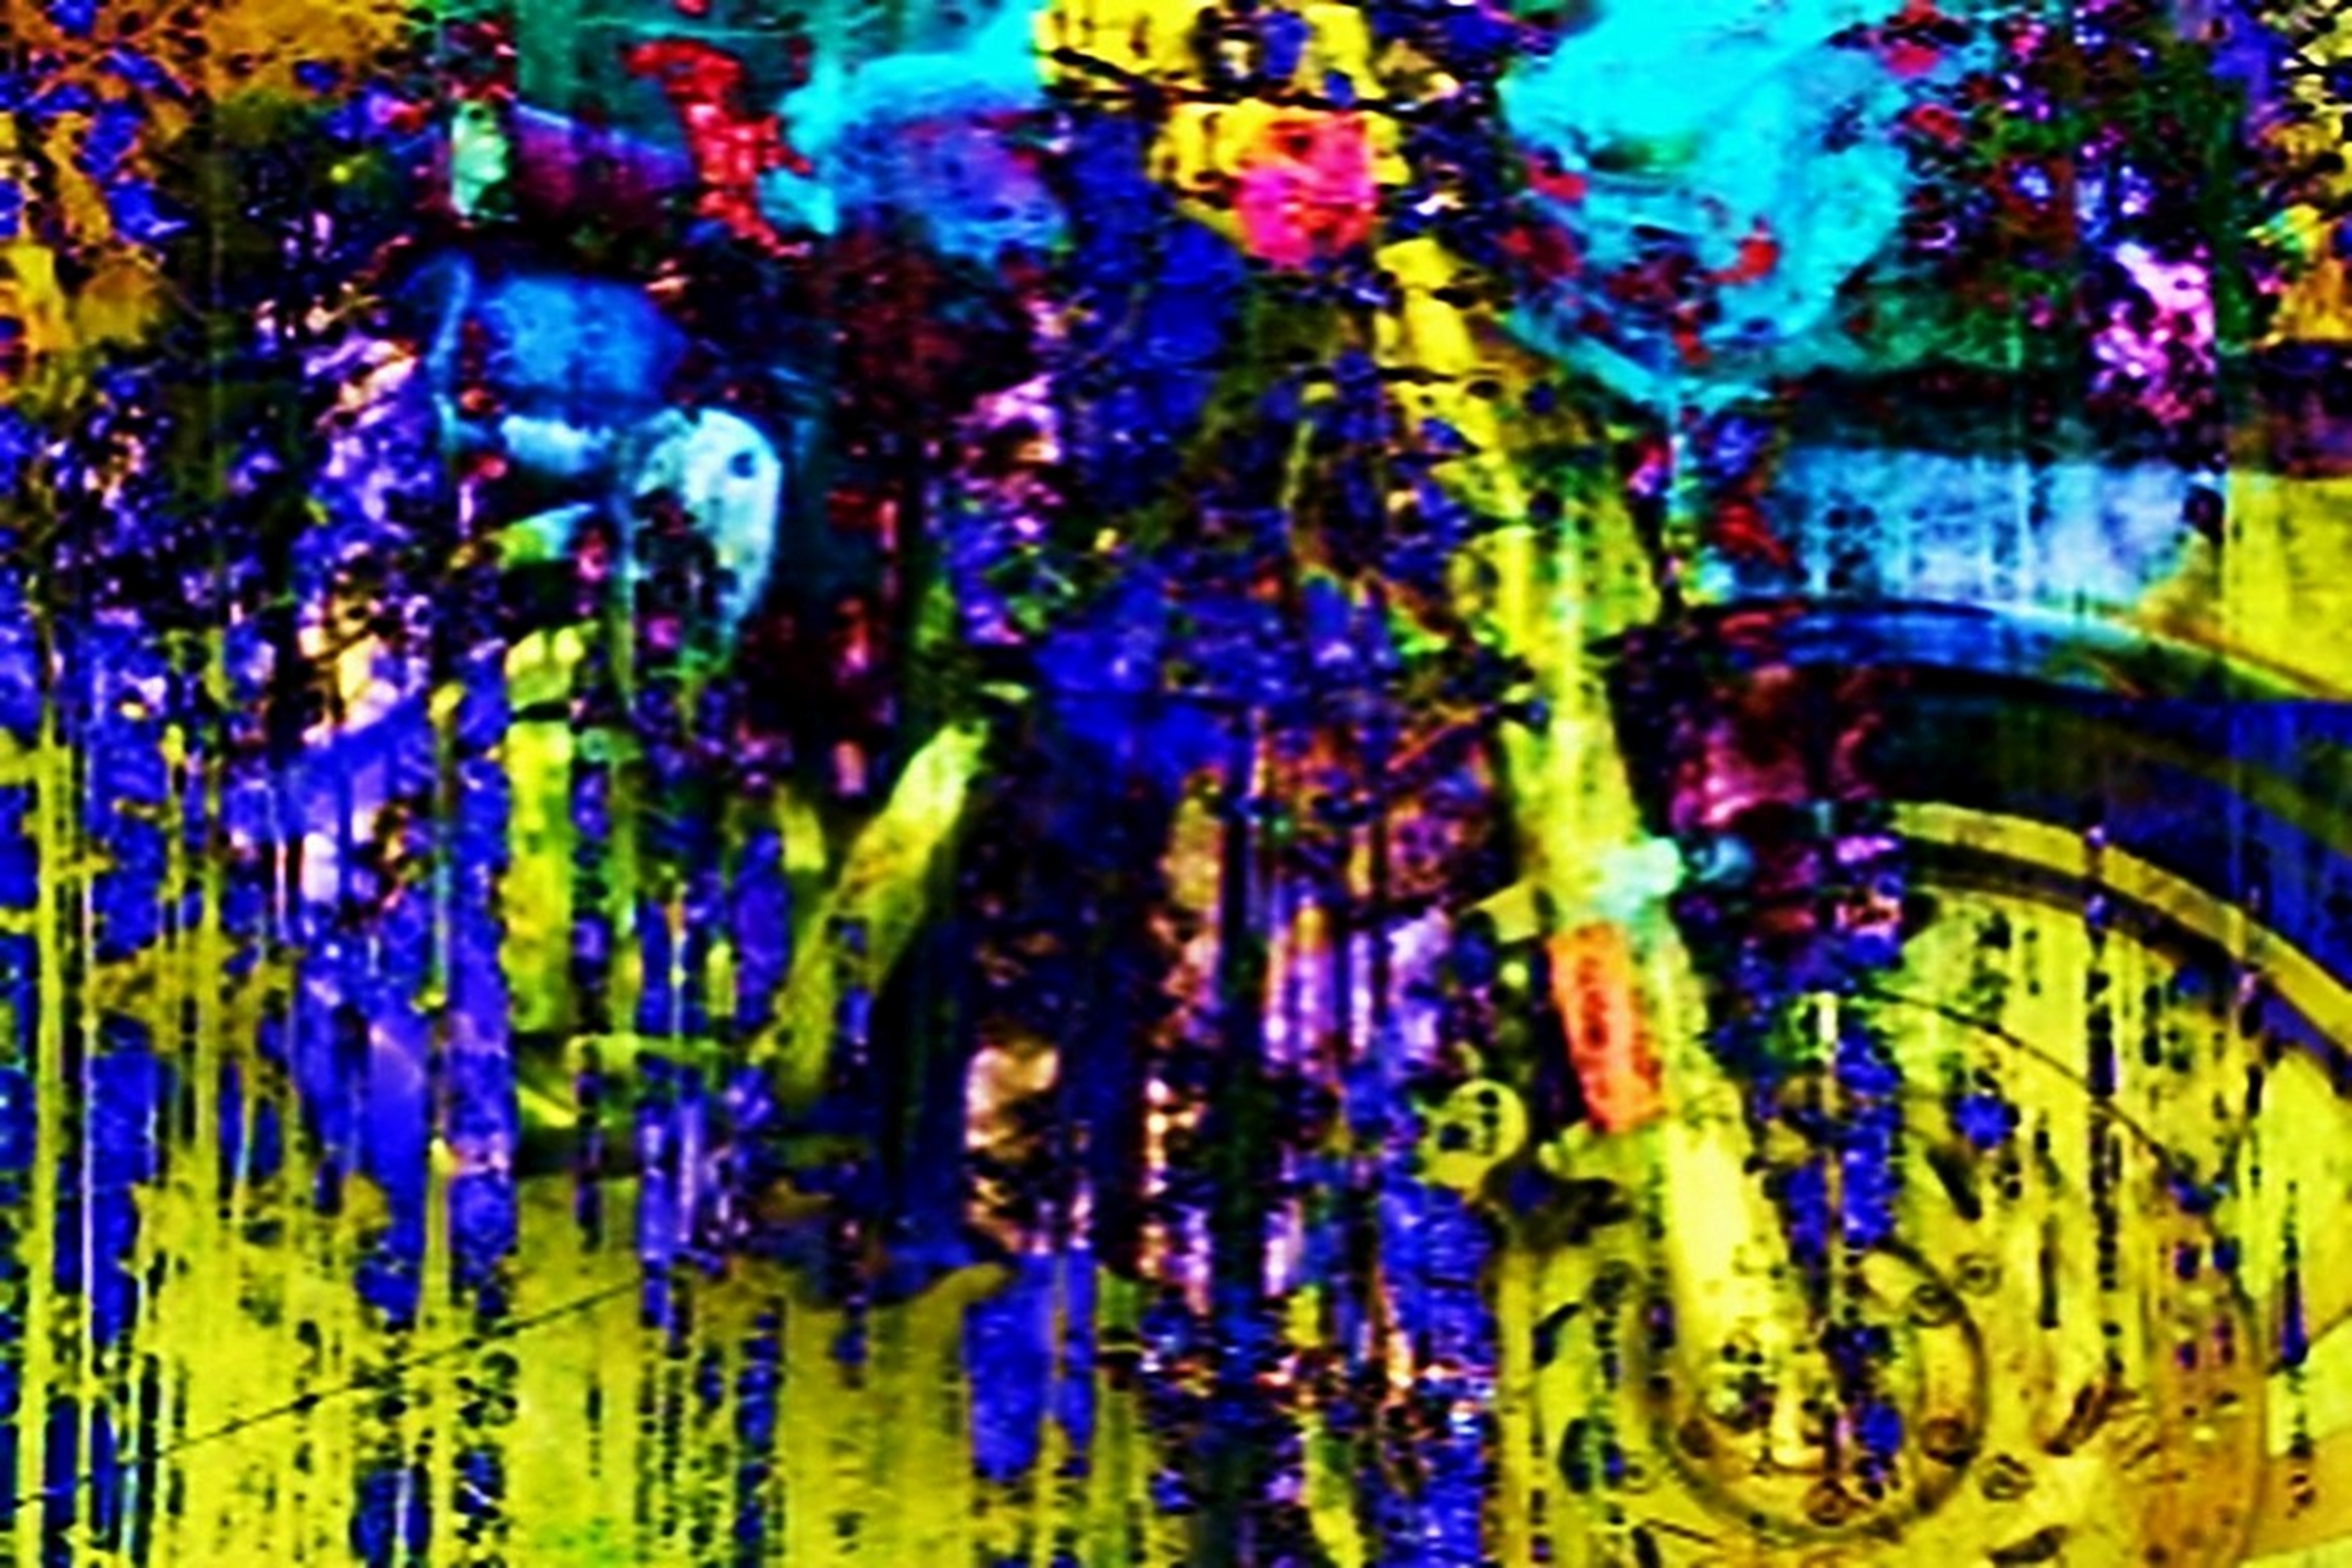 Abstract Photograph: 'Riding in the Pouring Rain' by artist and photographer John Russell